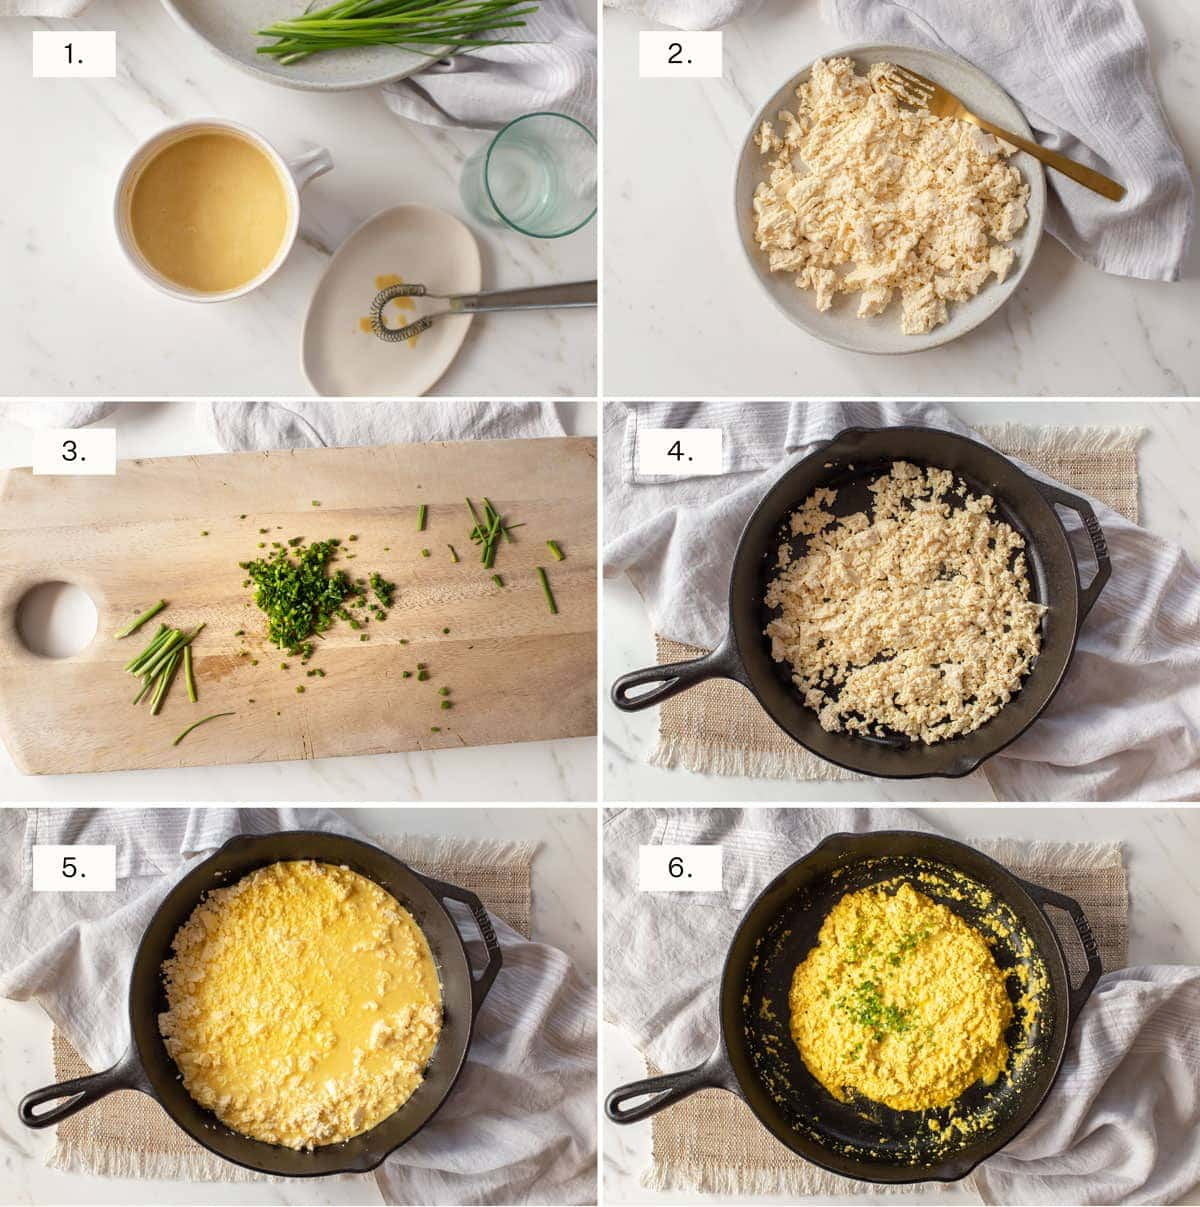 Step by step photos for making scrambled tofu